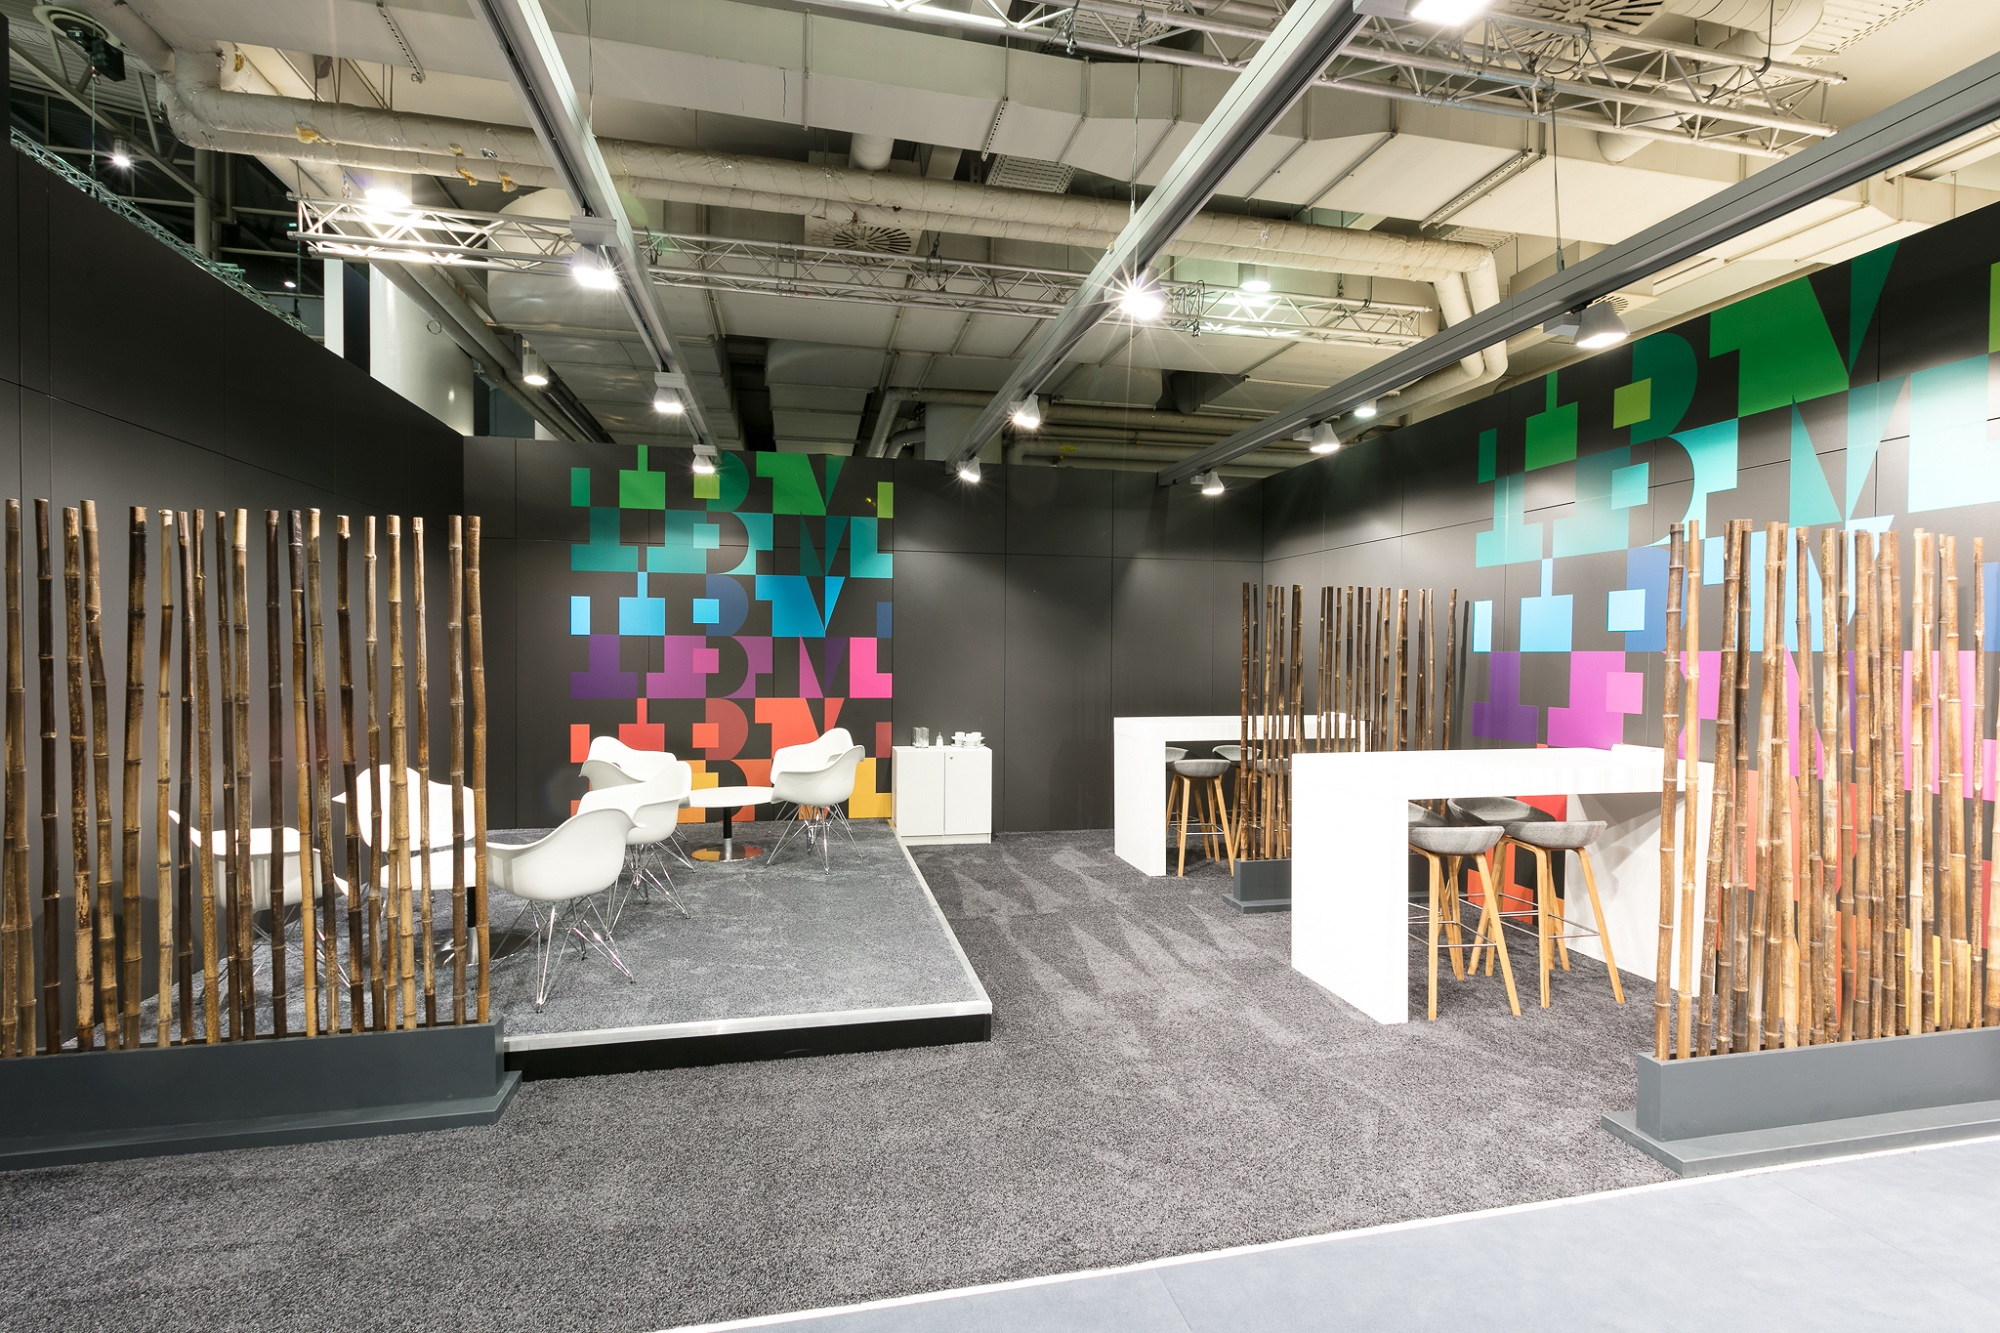 IBM-CeBIT-2017-Architektur-7775.jpg